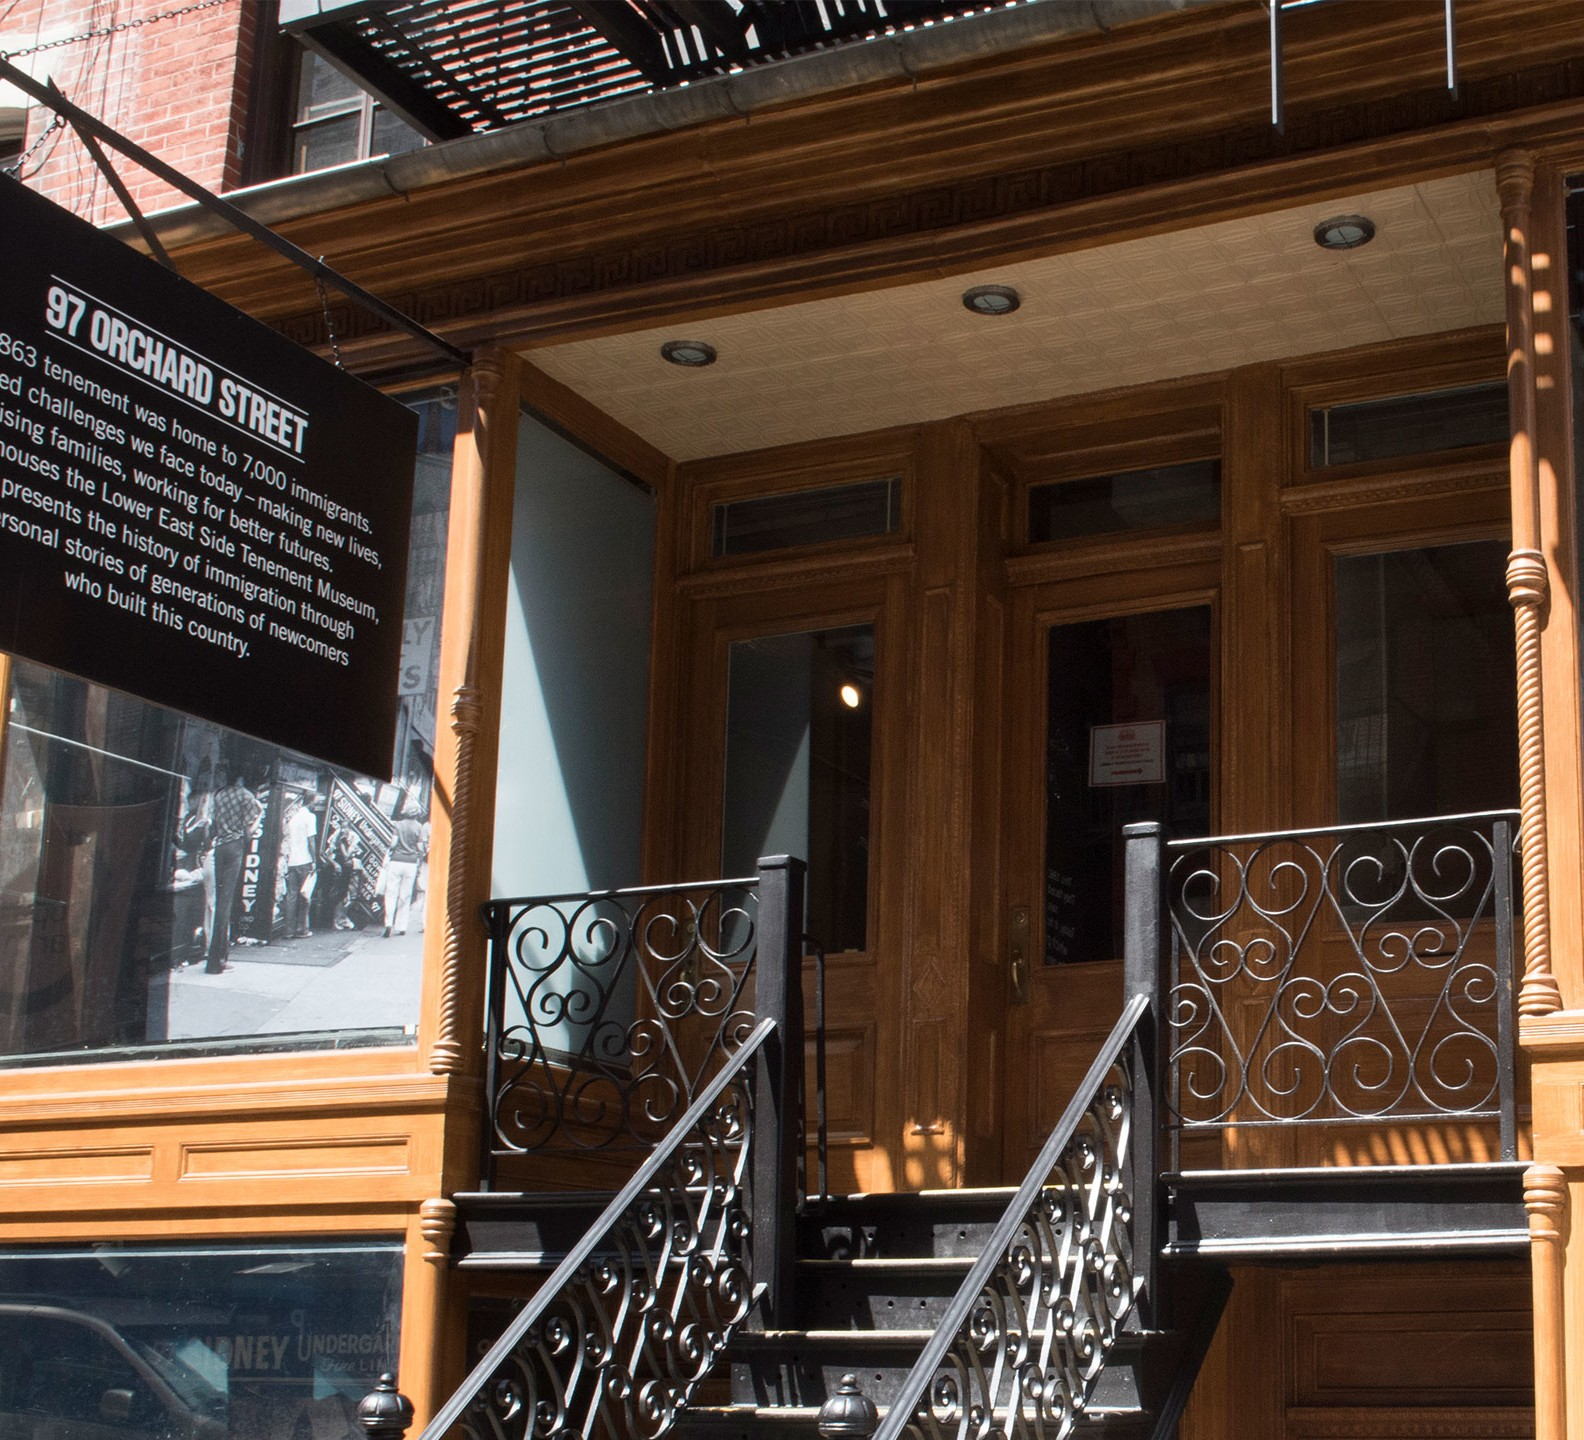 Late Night Thursday June 6 Tenement Museum